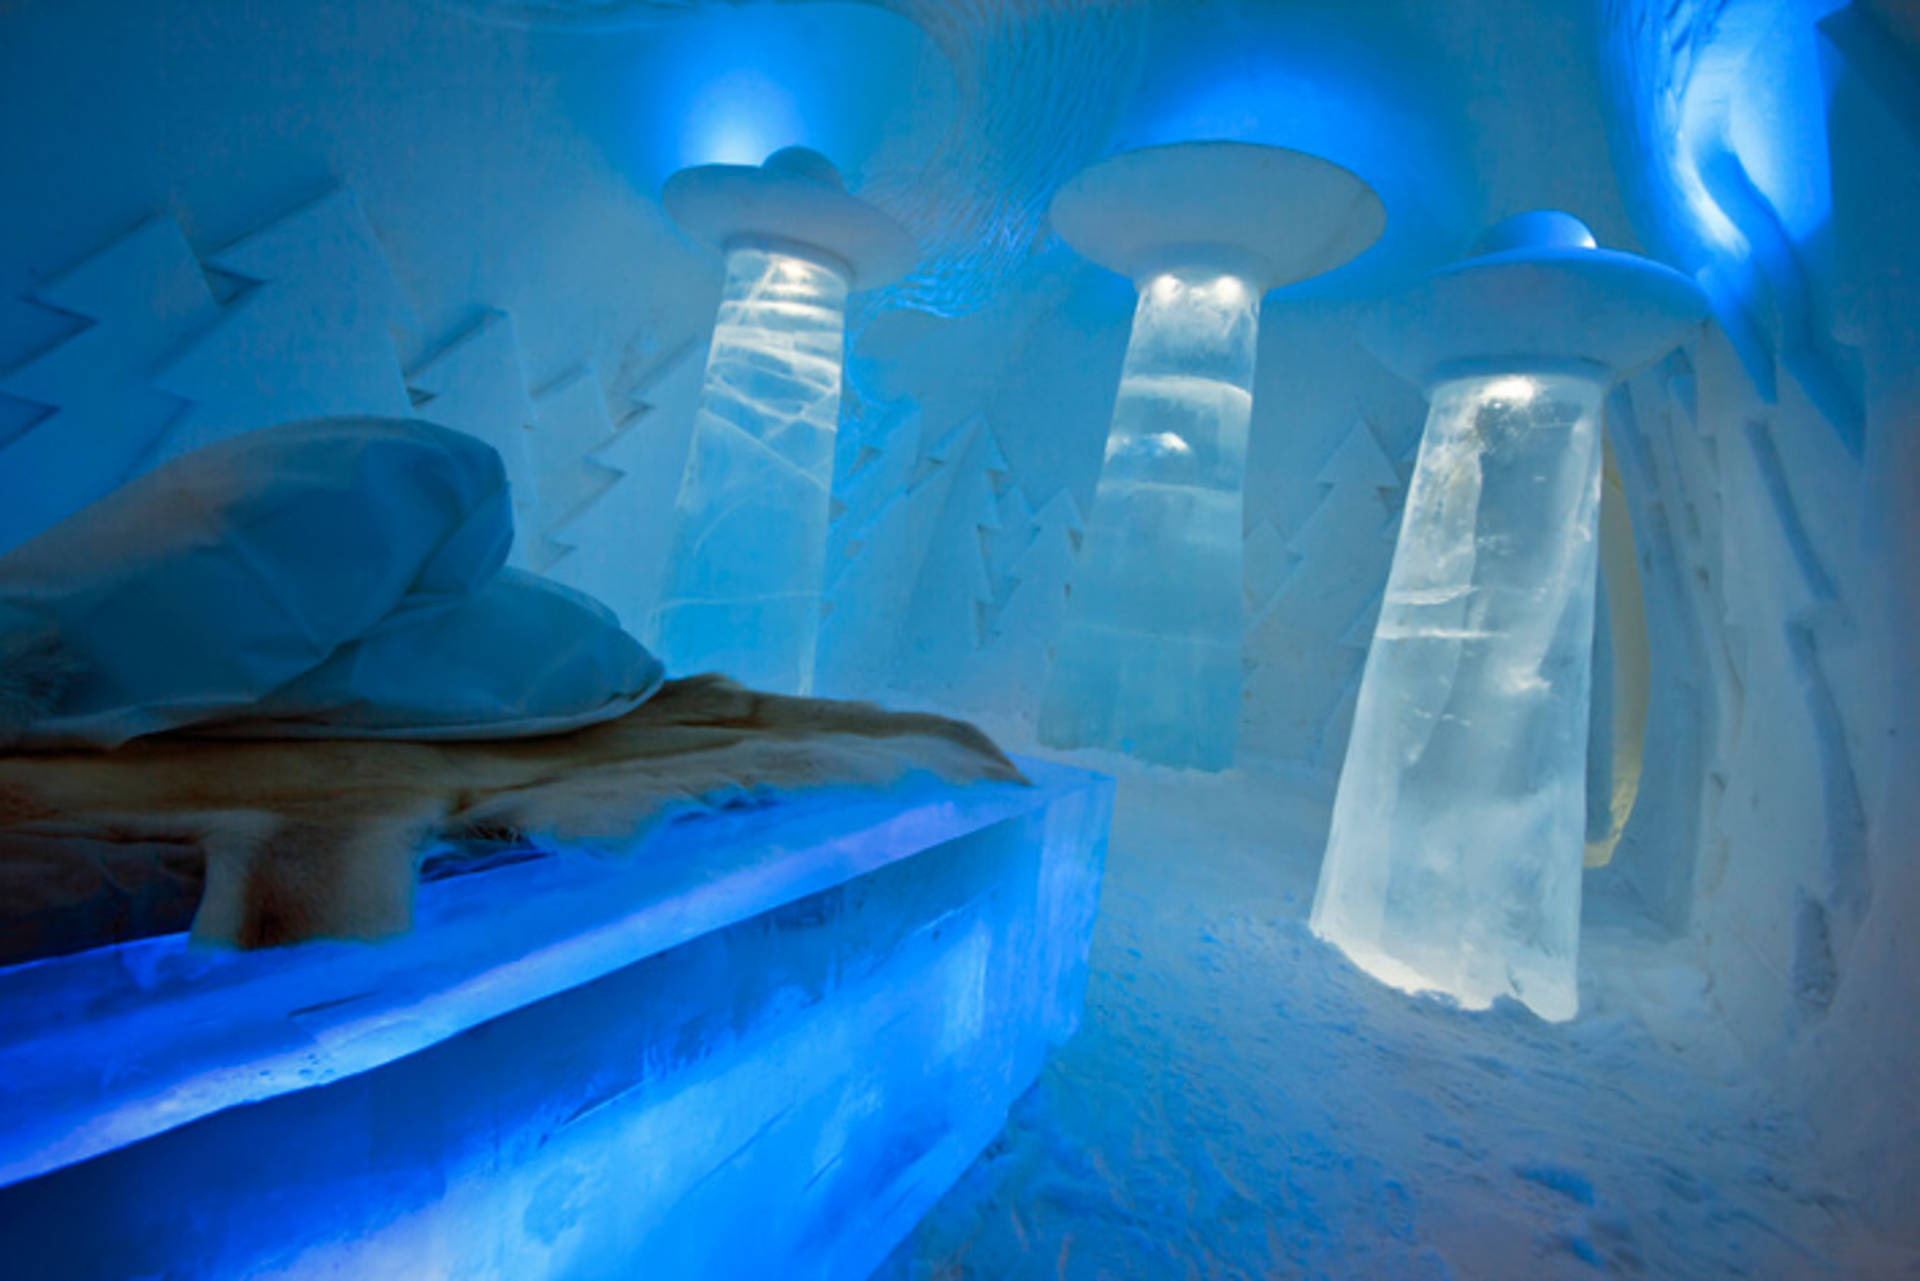 Quot Beam Me Up Quot Room In Ice Hotel By Christian Str 246 Mqvist